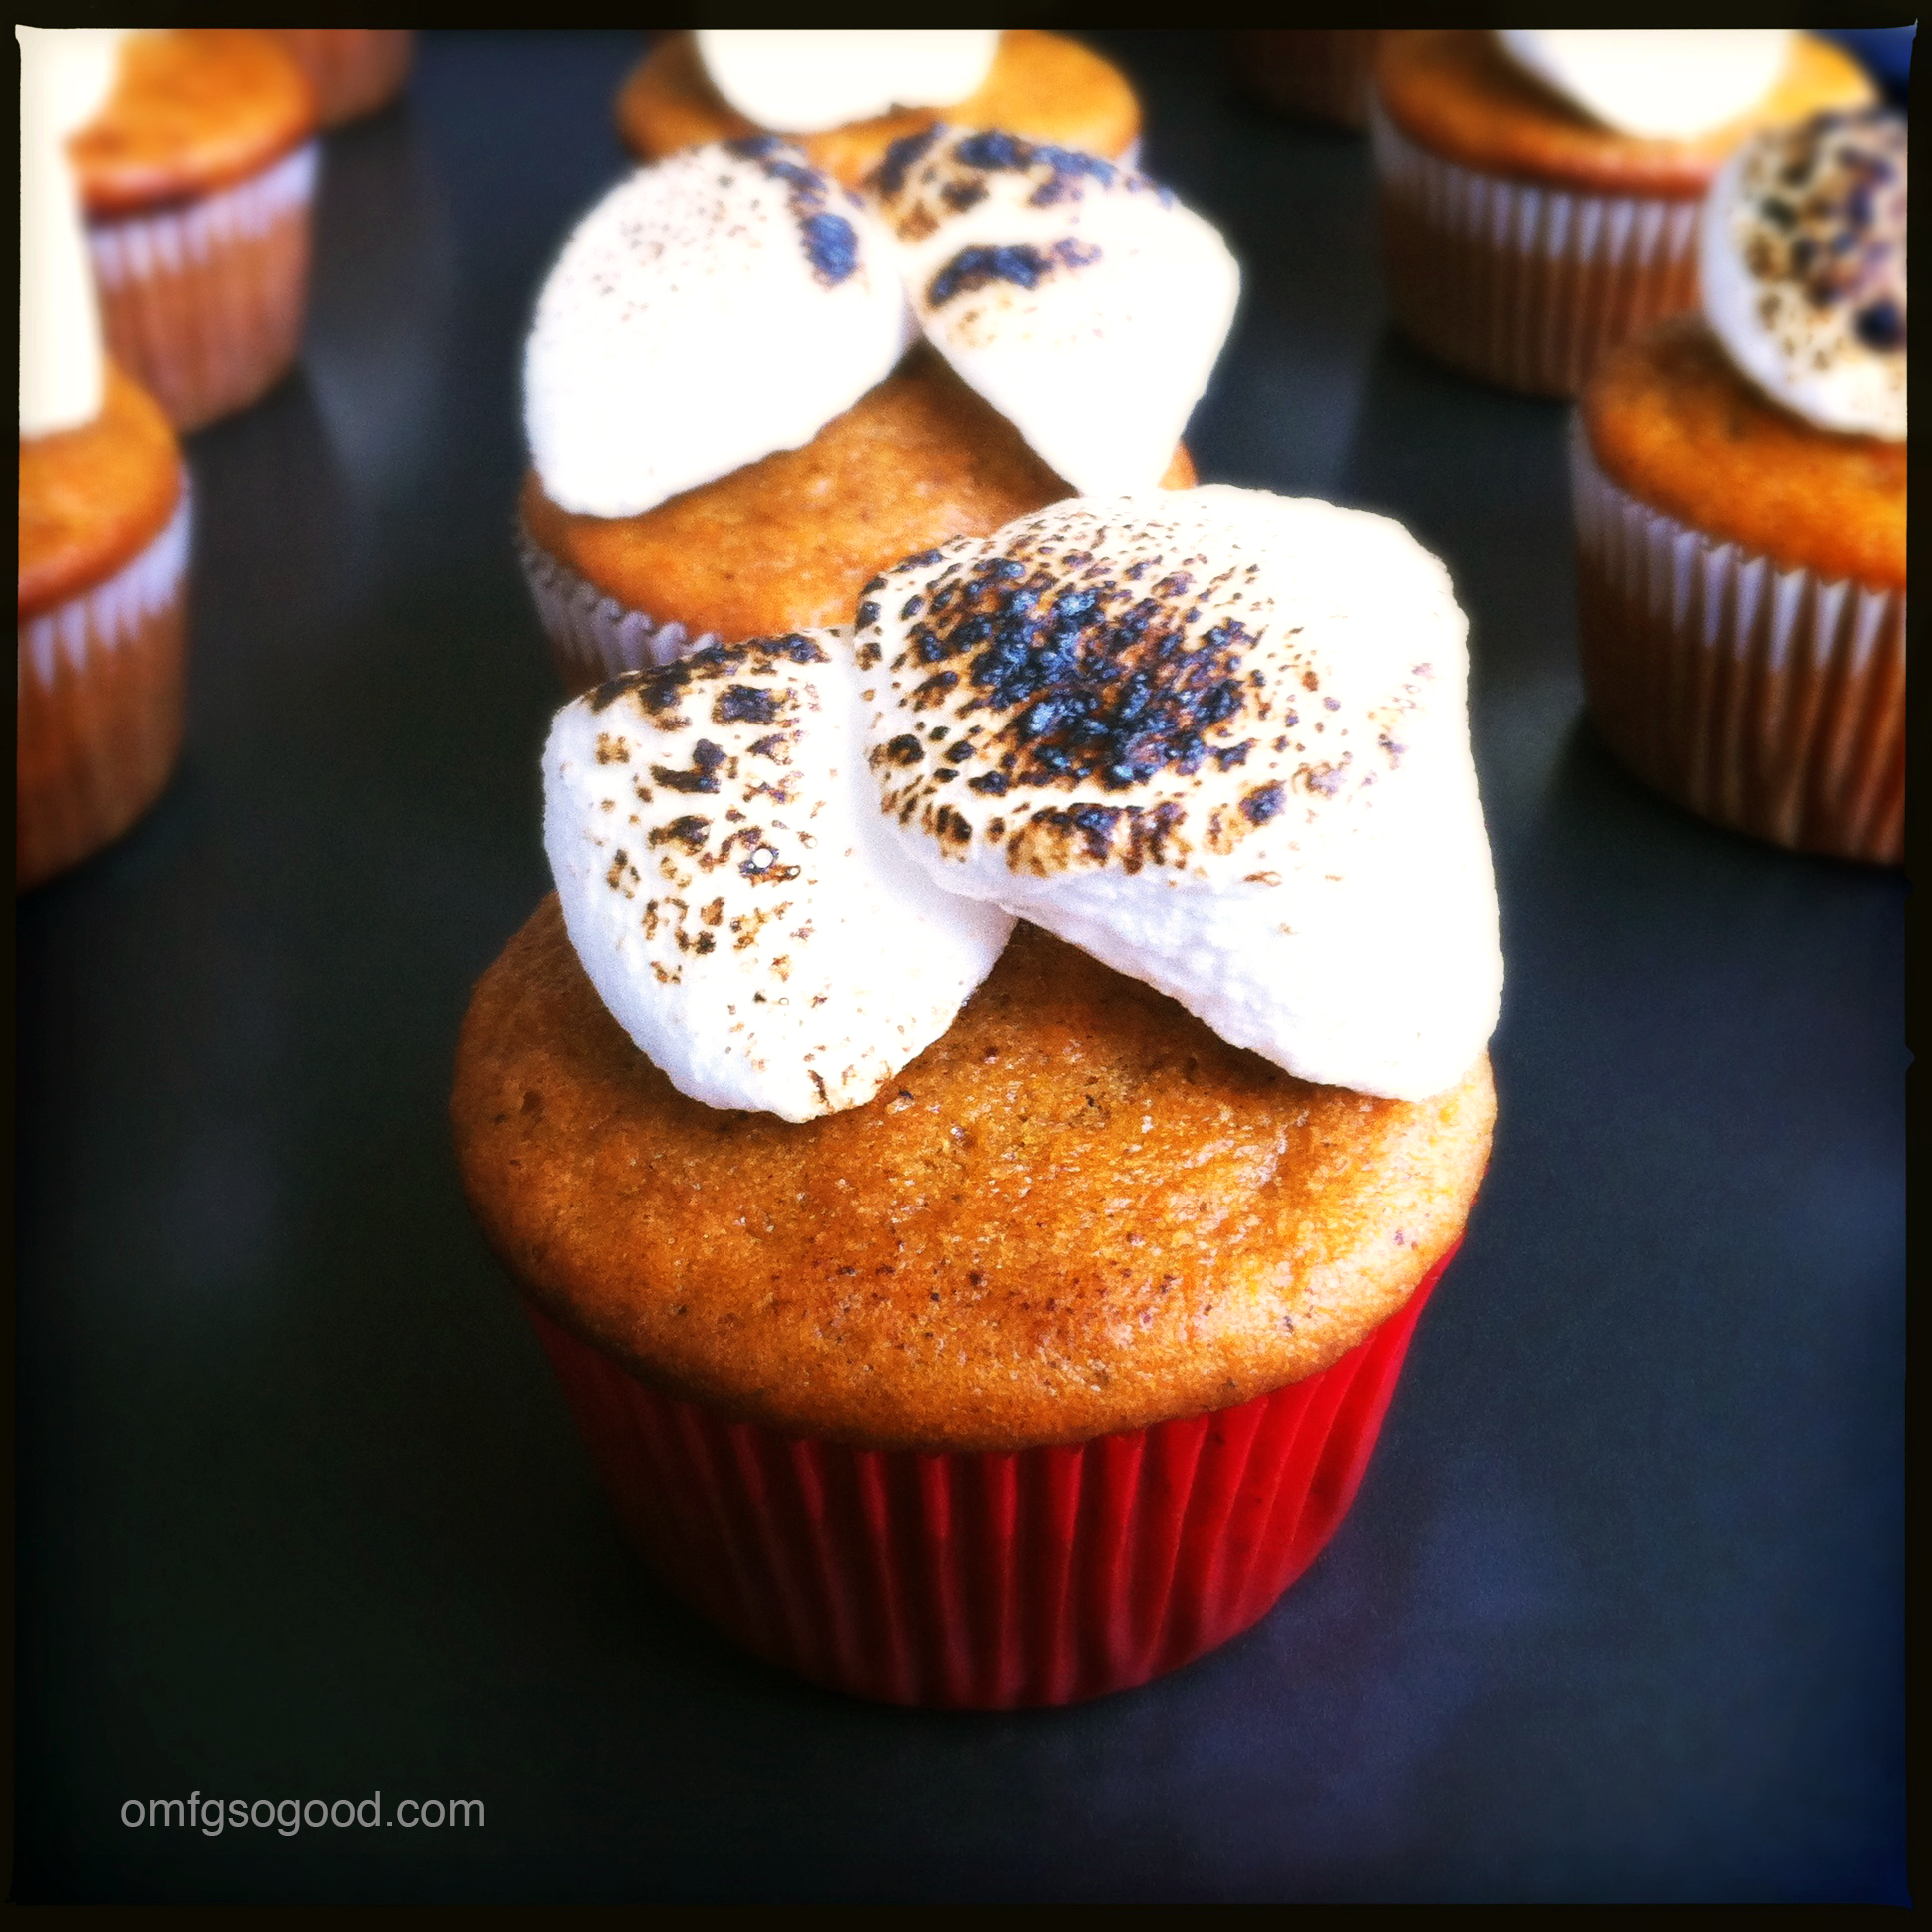 roasted sweet potato cupcakes